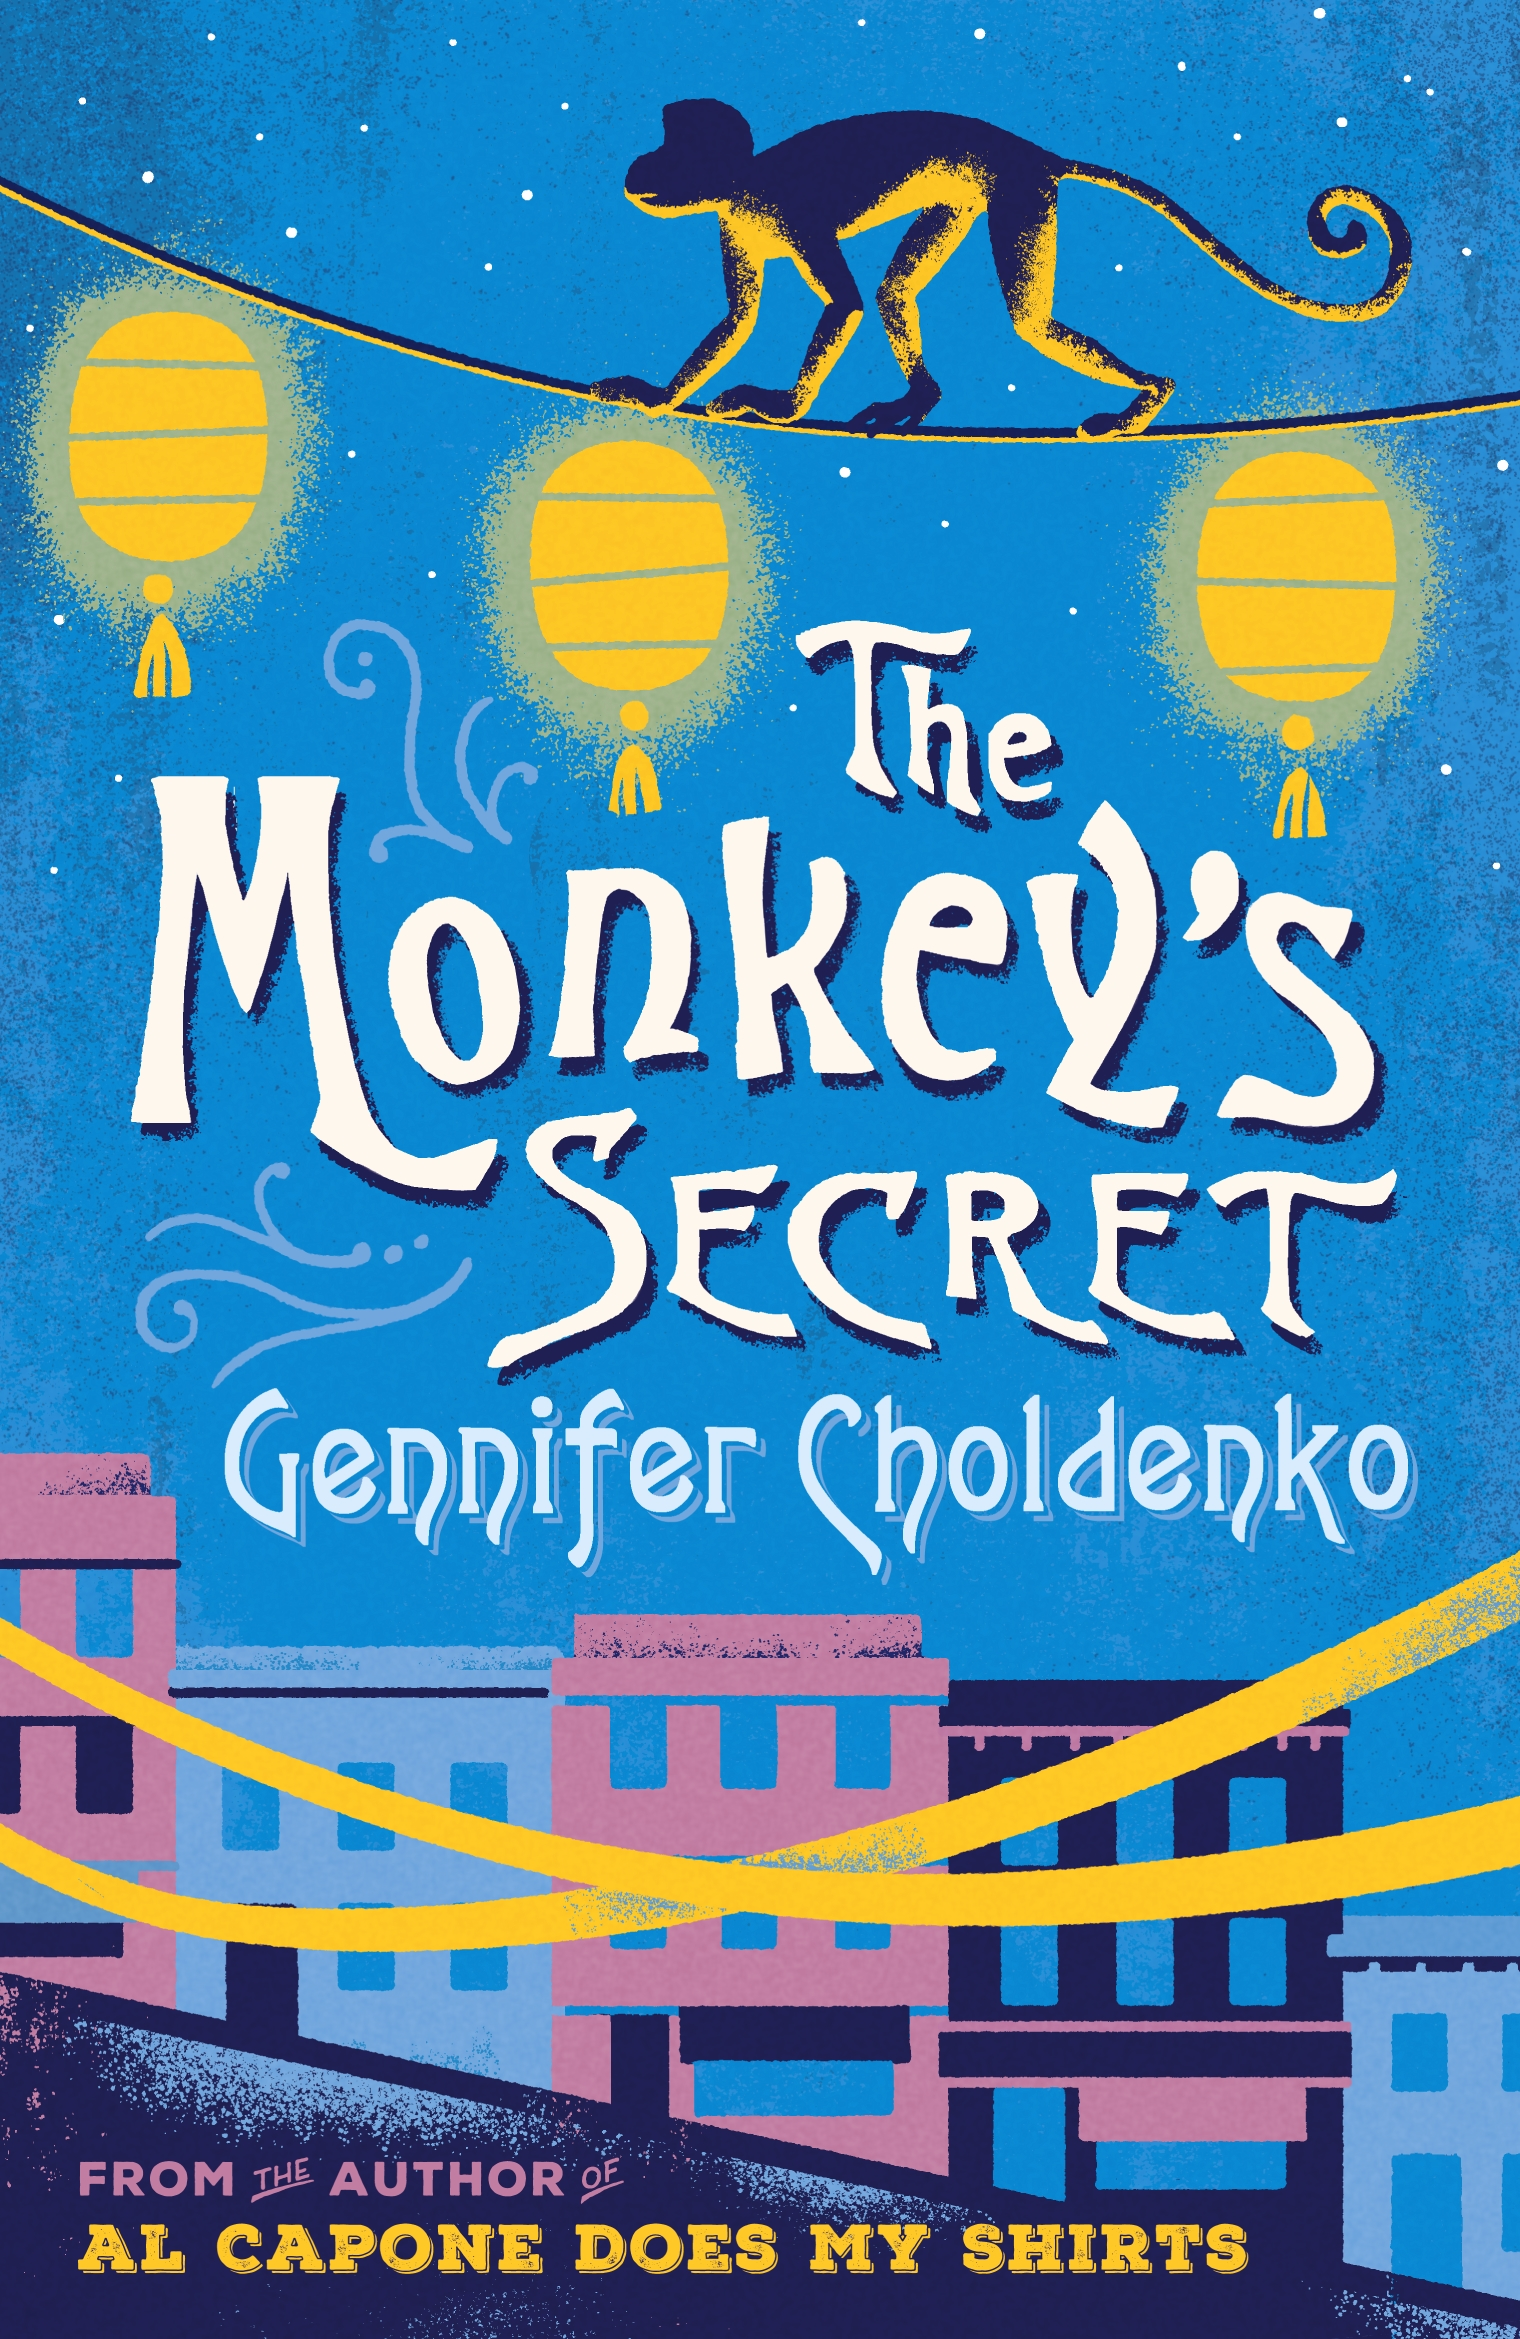 The Monkey's Secret by Gennifer Choldenko